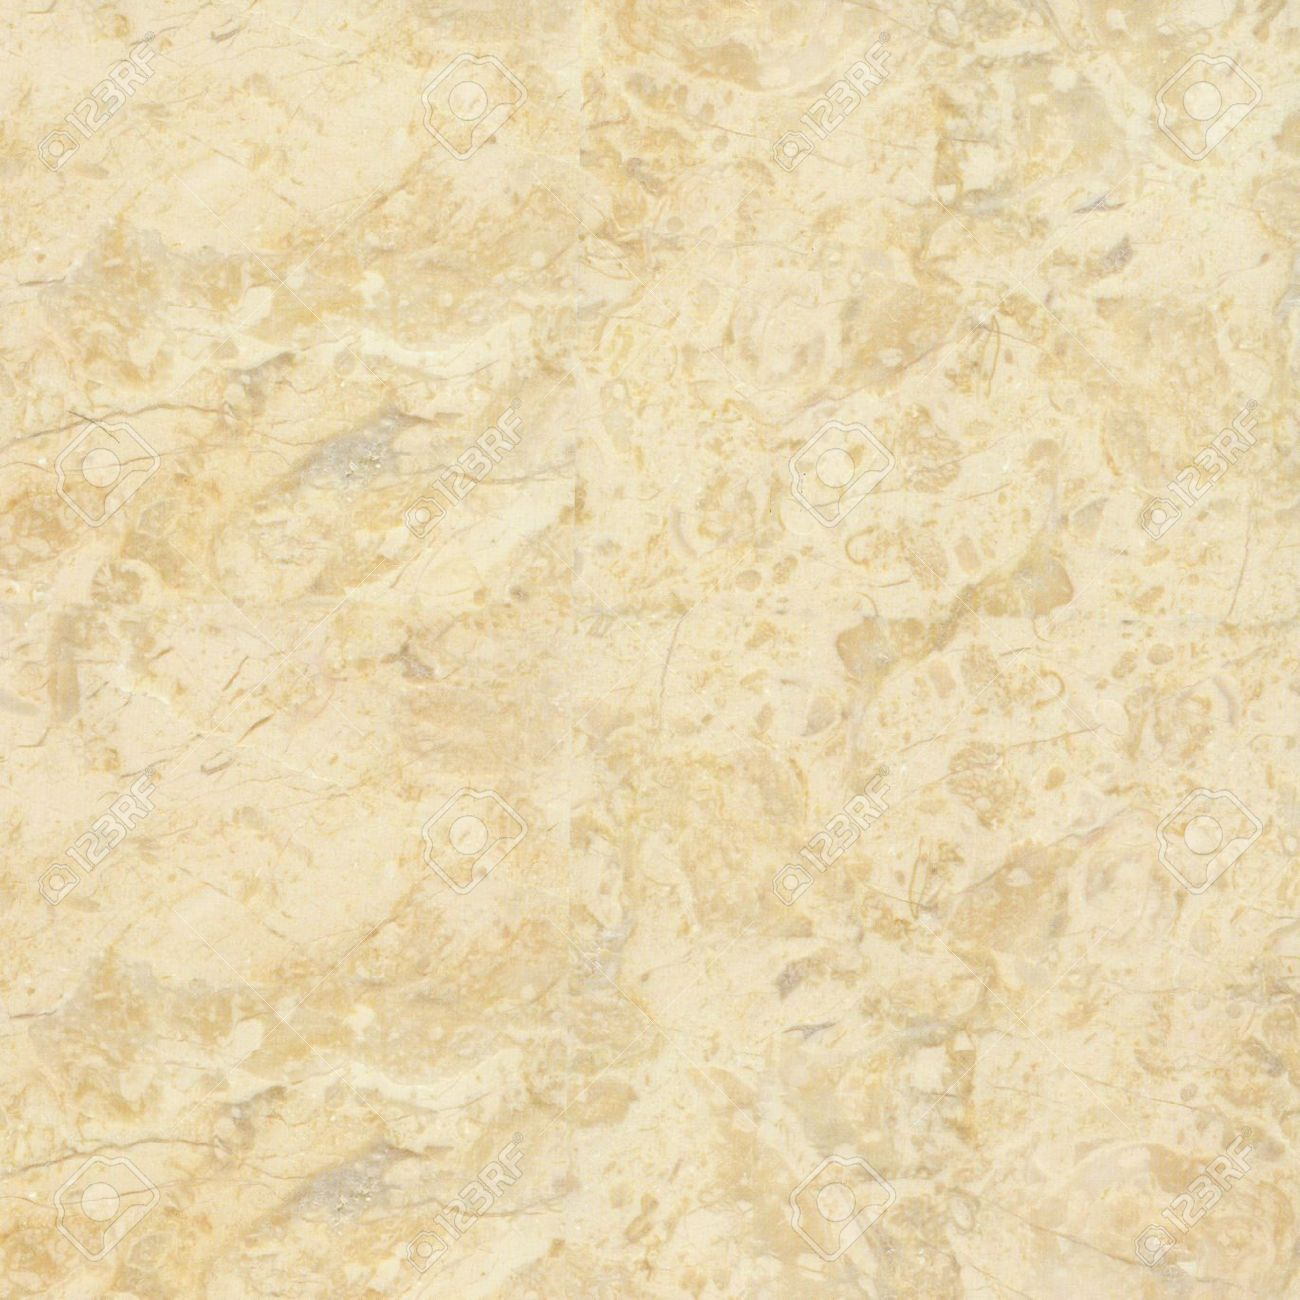 beige marble wallpaper - photo #15